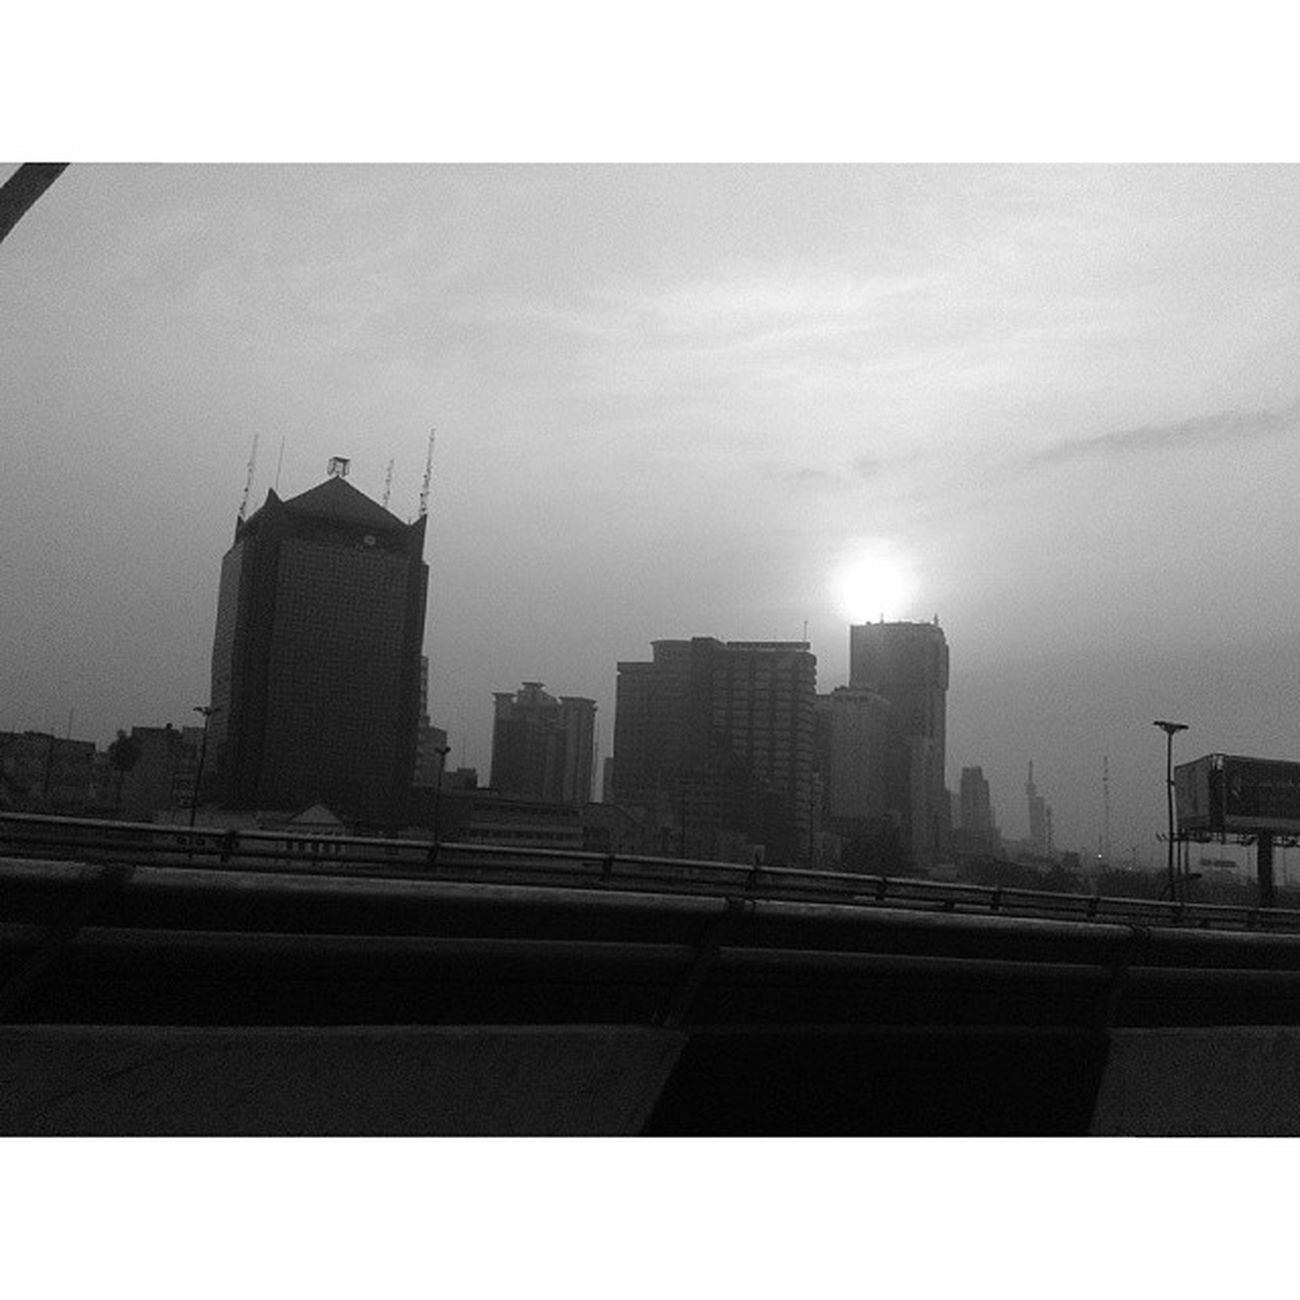 I enjoy taking pictures from a moving vehicle with my phone. Its fun but isnt as easy as it seems because framing, composition and sharpness has to be on point. Its all about having the eye and understanding your tool. D Good Morning Fellas. PhonePhotography Carphotography SamsungDuos Passion BnW Monochrome Lagos Nigeria Africa LifeOfaPhotographer iamEdAce